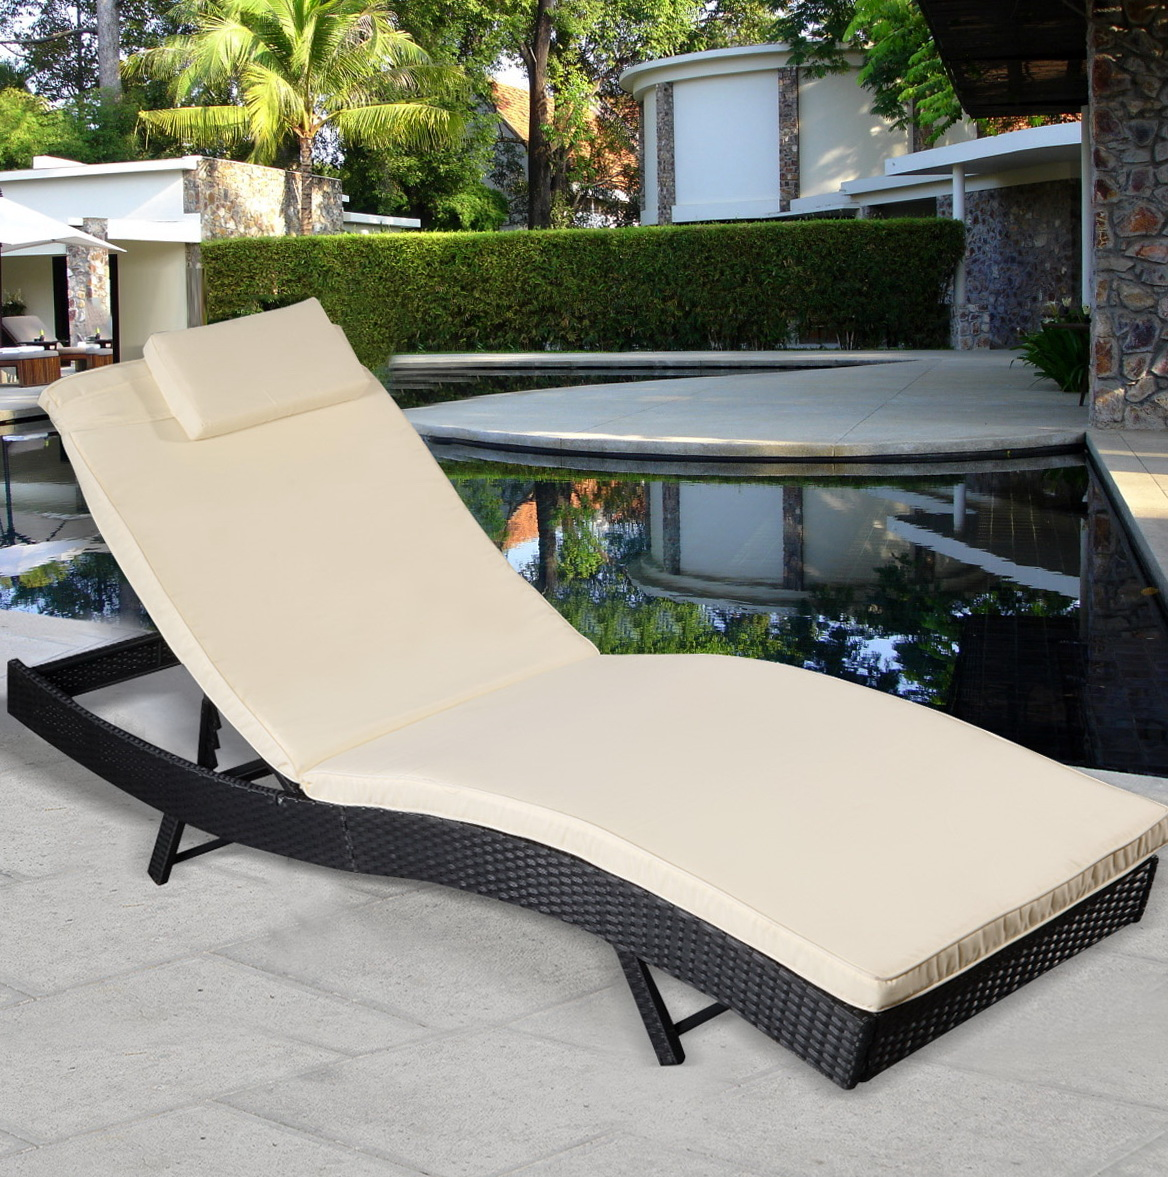 Permalink to Poolside Chaise Lounge Chairs